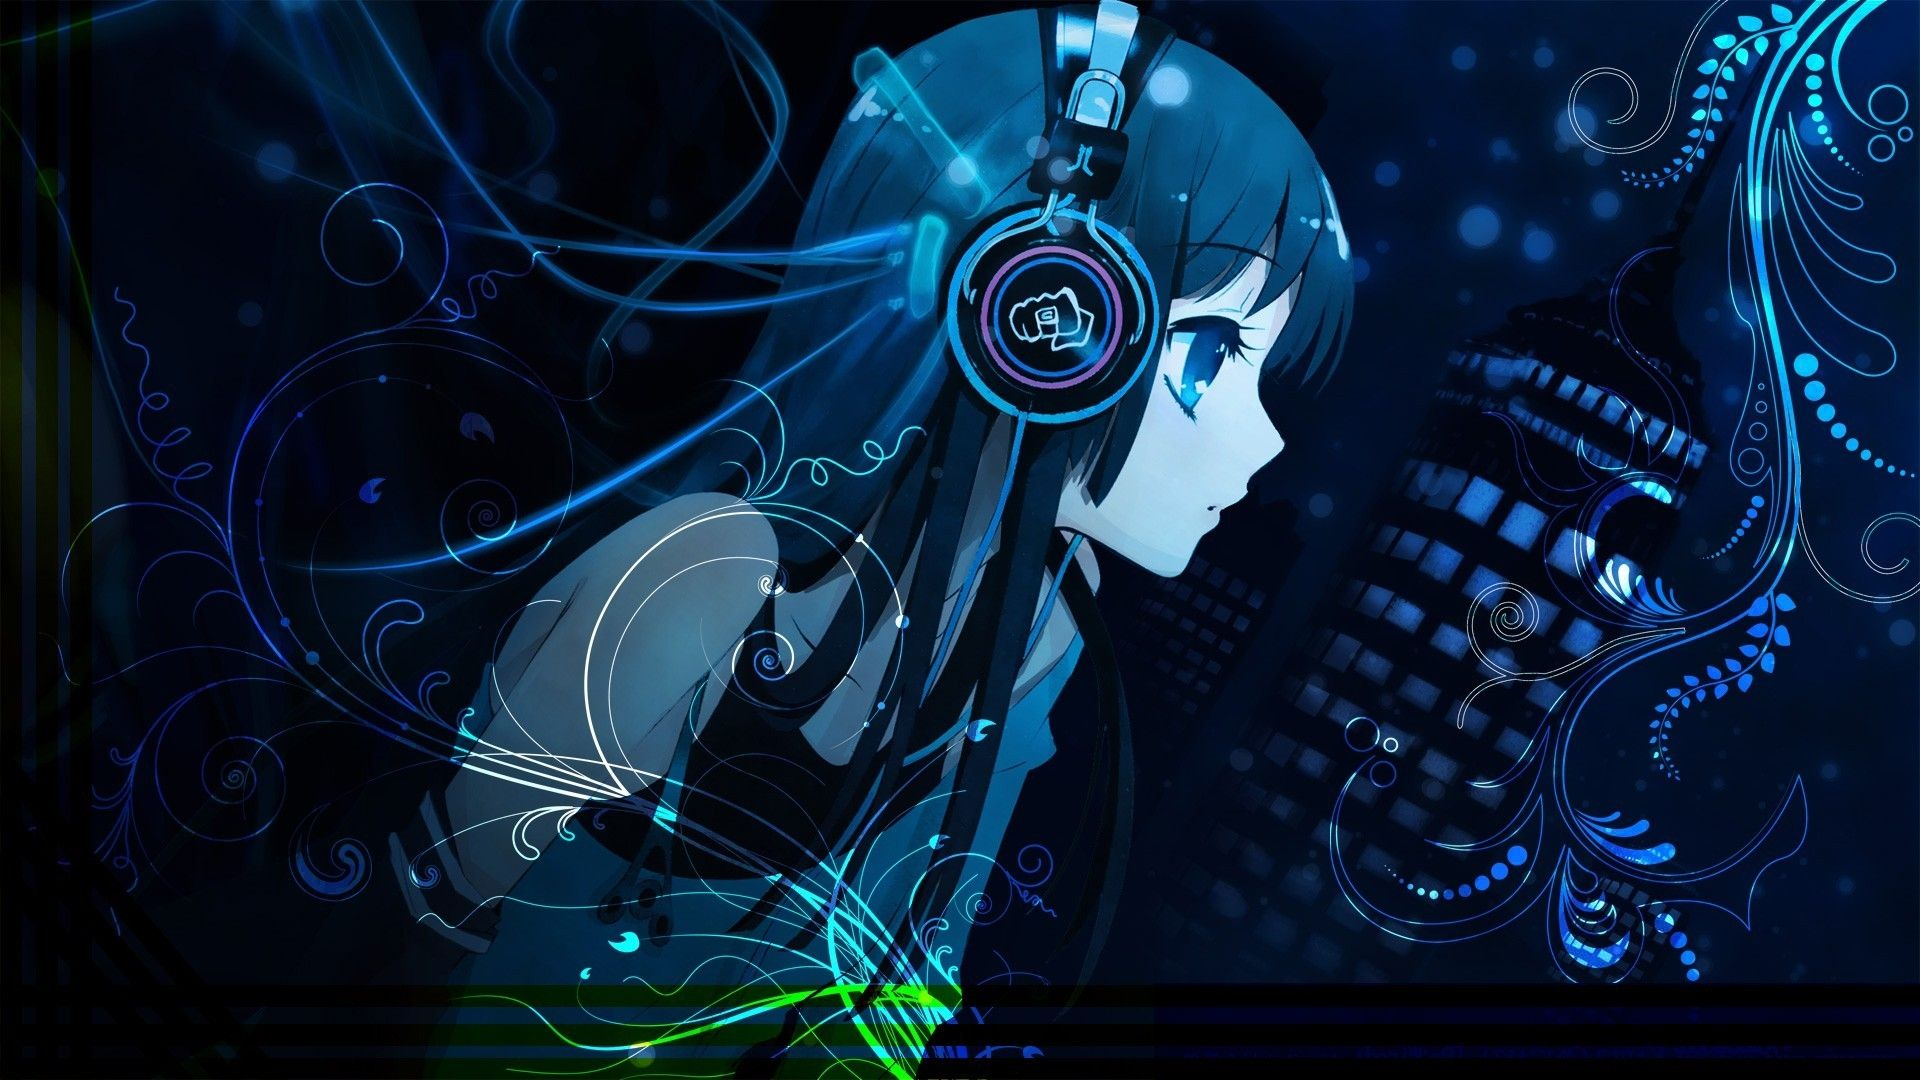 Anime Girl With Headphones Wallpapers Top Free Anime Girl With